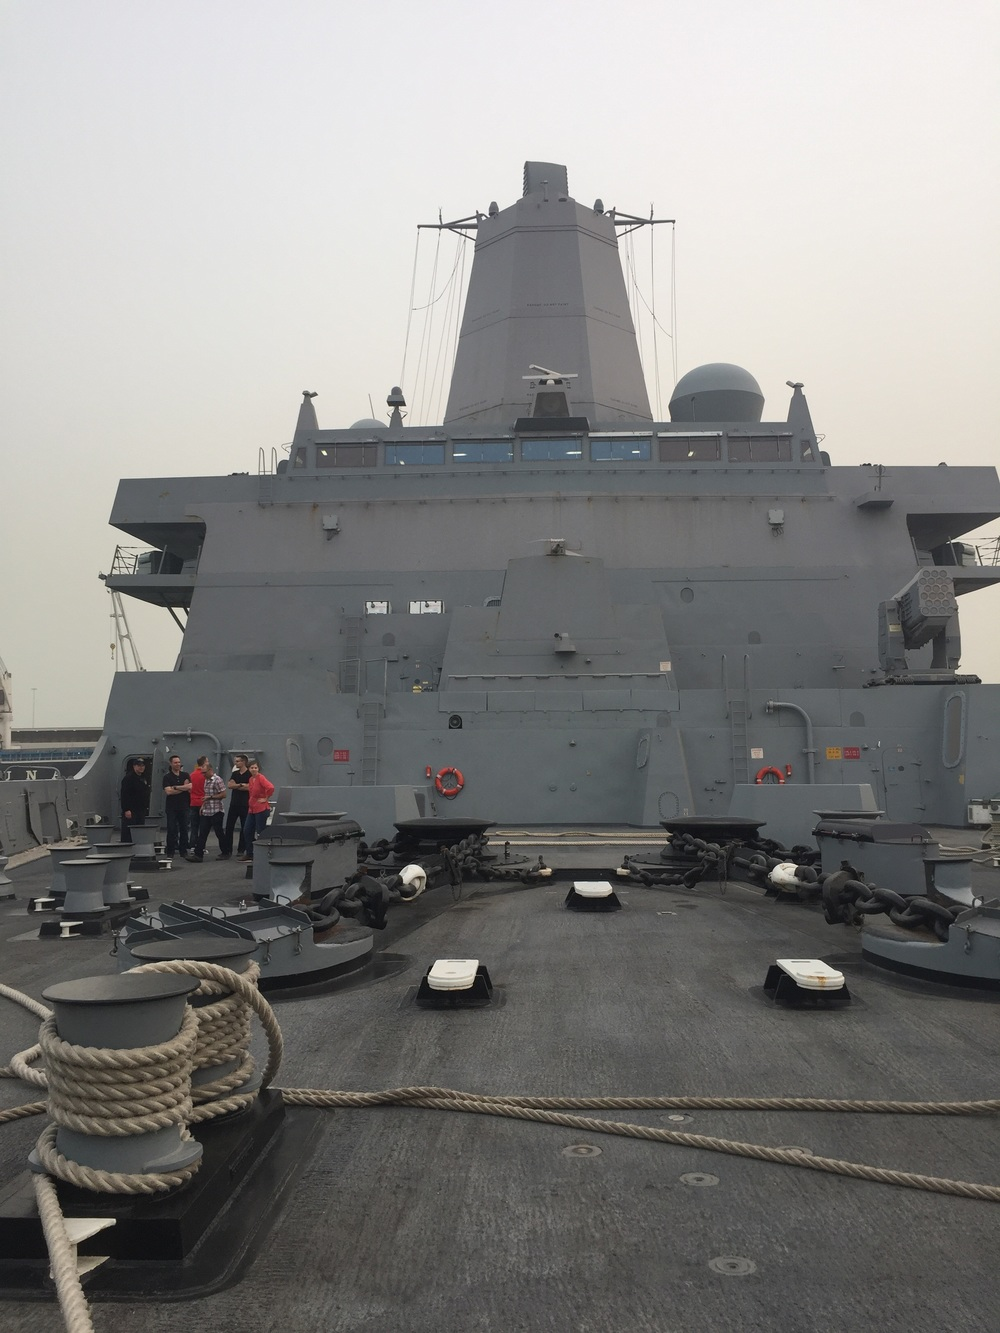 A private tour onboard the USS Arlington warship in Kuwait. We played a gig during a ceremony/reception for the 25th anniversary of the liberation of Kuwait.